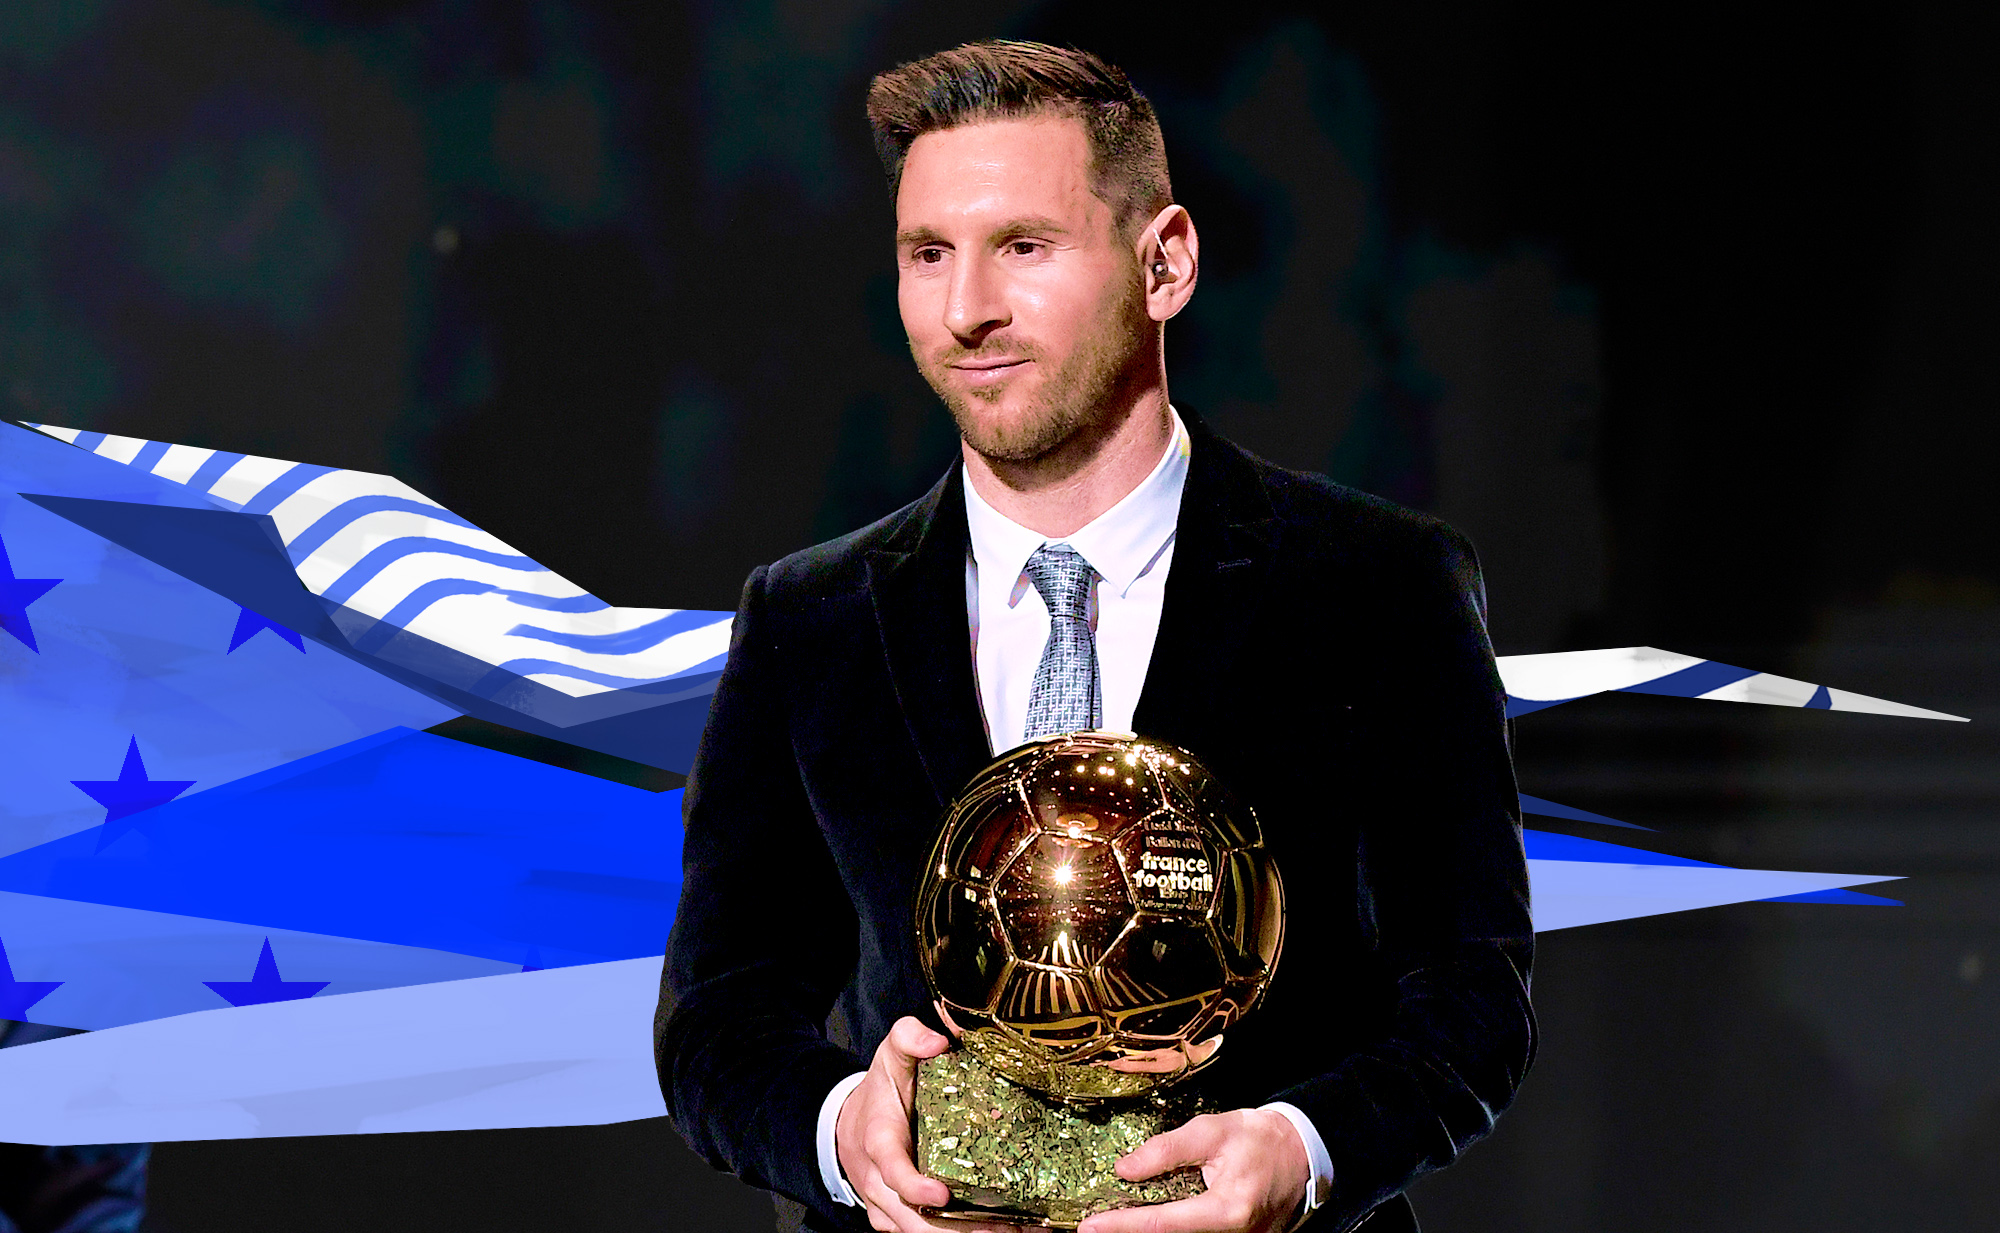 Tactically Naive: Soccer awards are silly, so why not give Lionel Messi every Ballon d'Or?